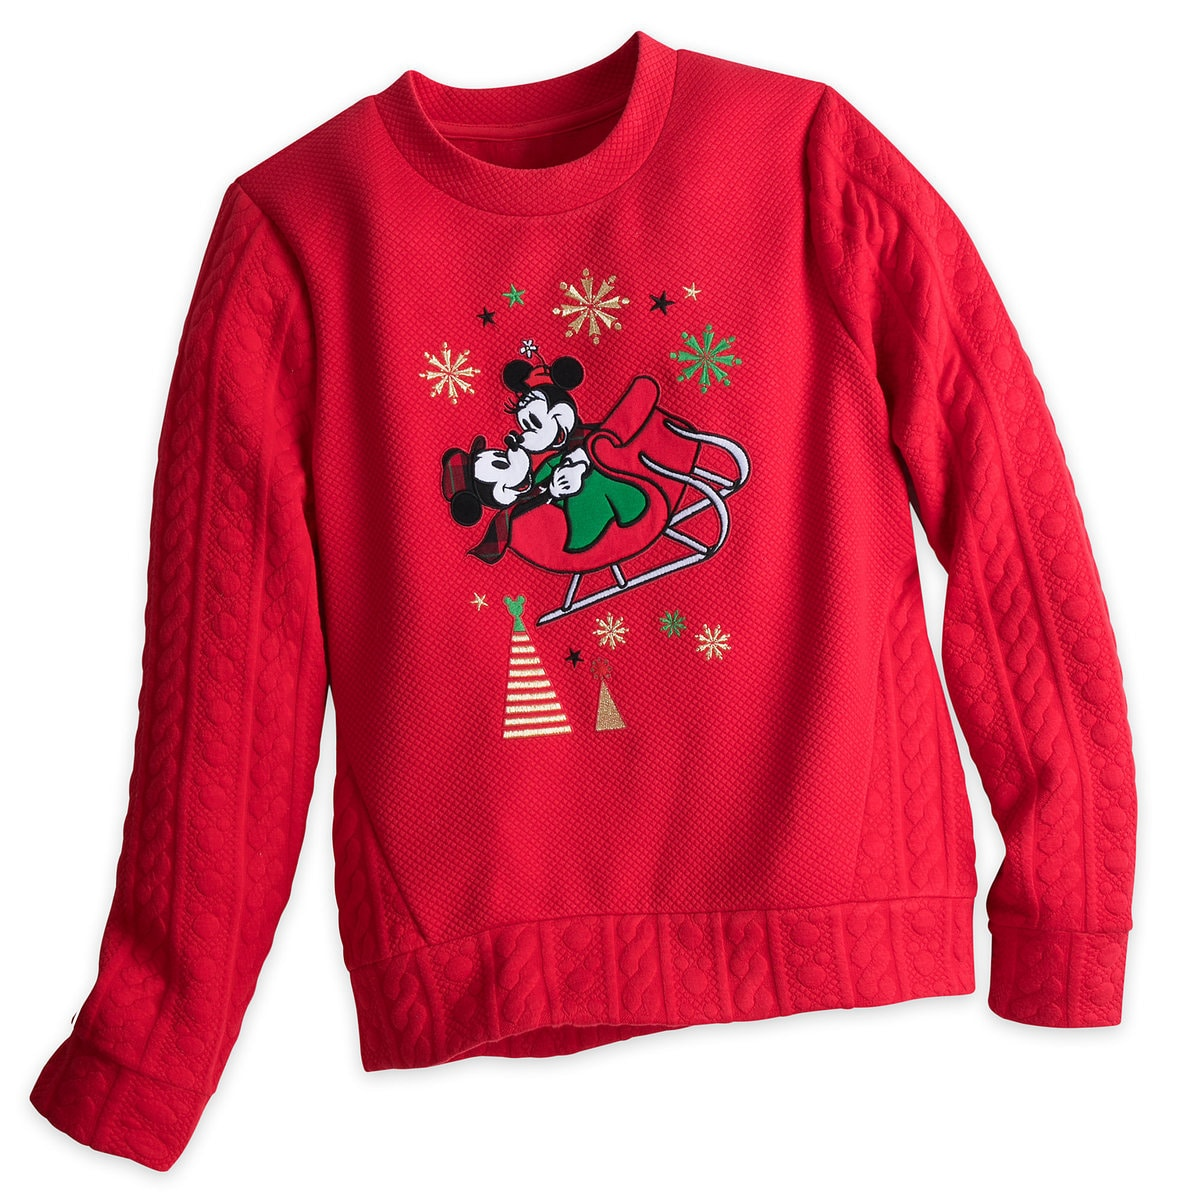 Mickey and Minnie Mouse Holiday Sweater for Women | shopDisney